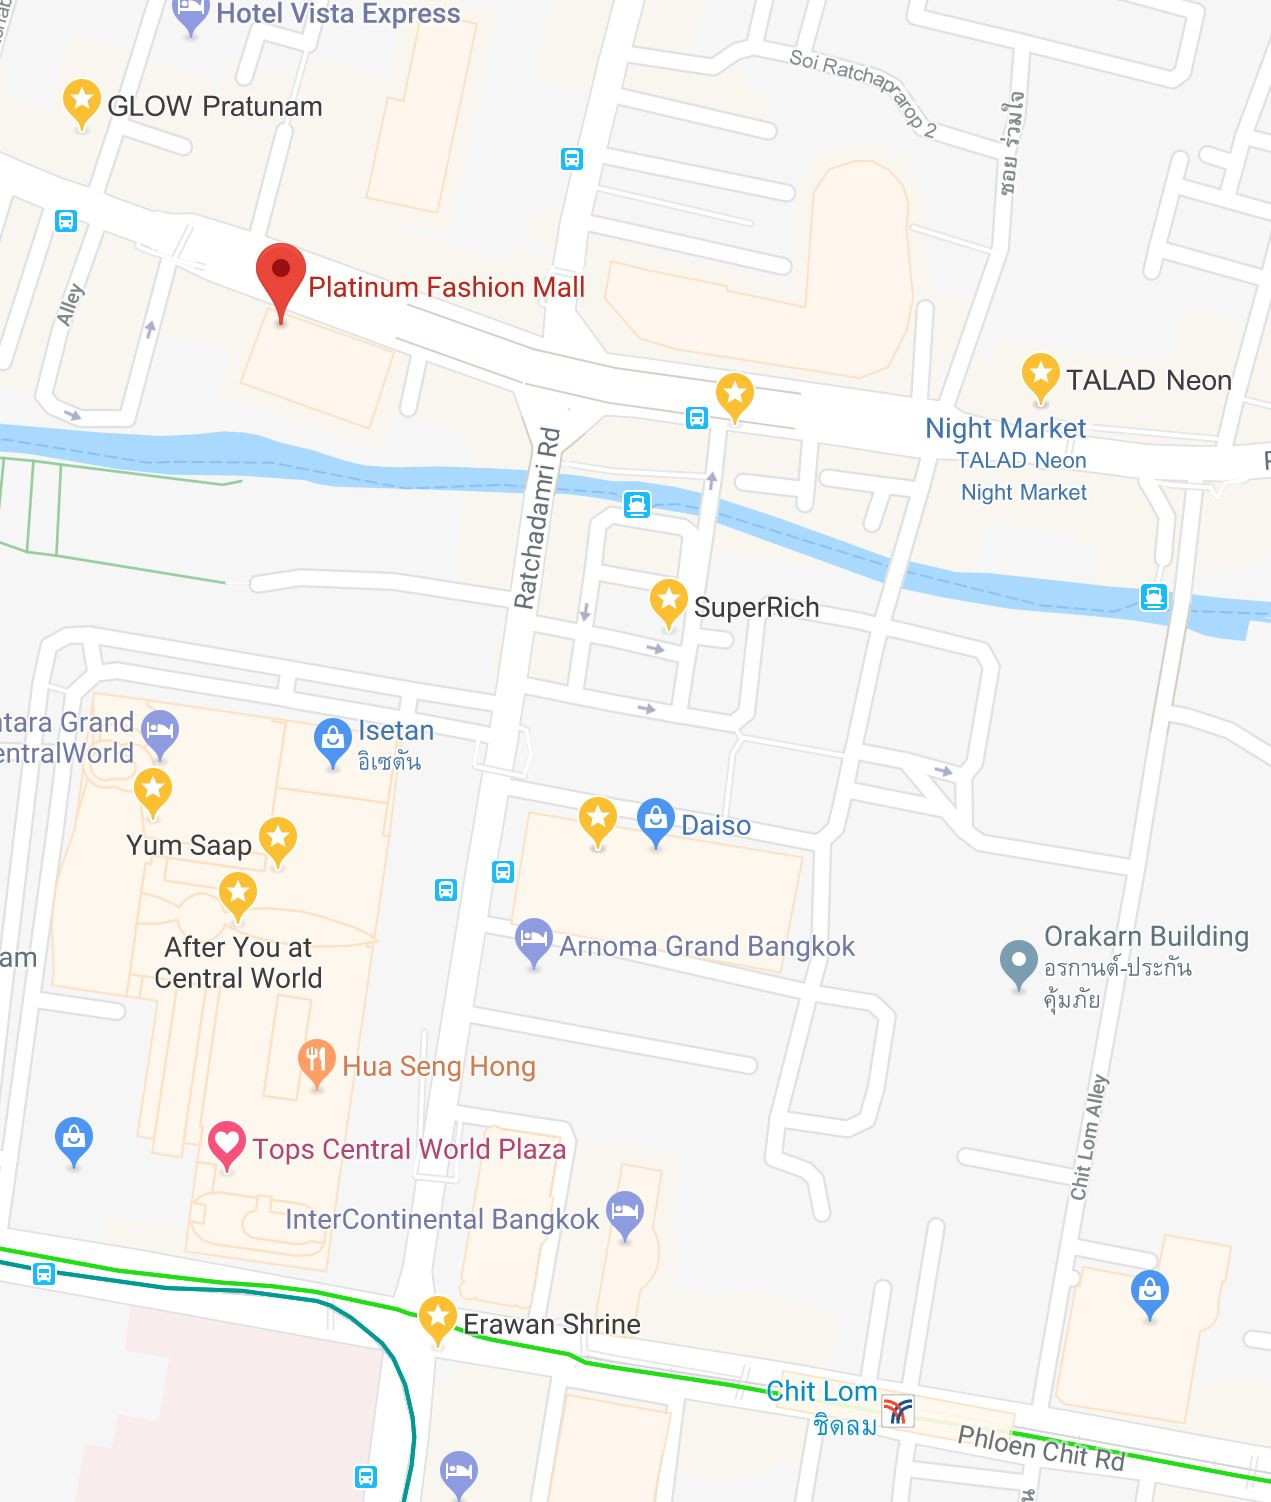 Overcome life bangkok d2 pratunam area and talad neon night market chit lom bts surrounding area pic source google map gumiabroncs Images